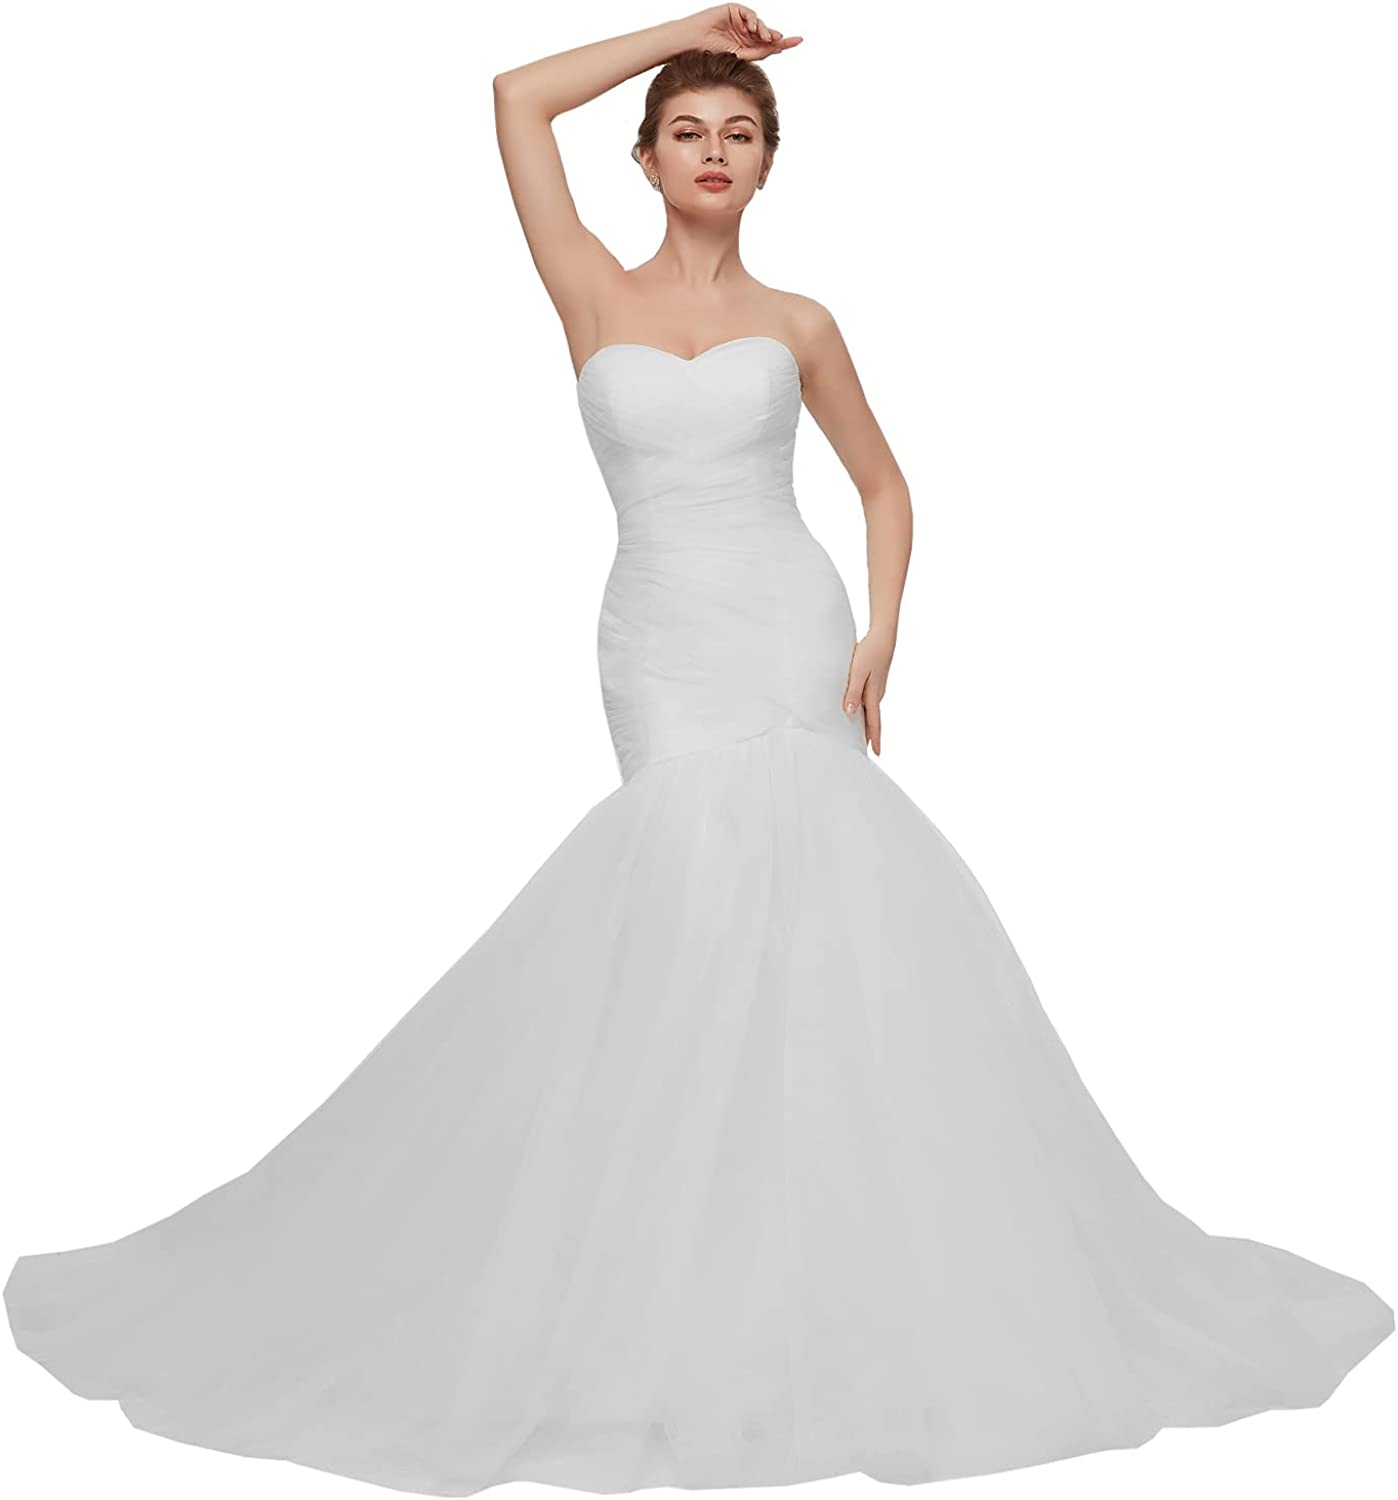 Sexy Sweetheart Mermaid Wedding Dresses for Bride 2021 Tulle Pleated Lace Up Corset Custom Bridal Gowns Slim Fitted Trumpet